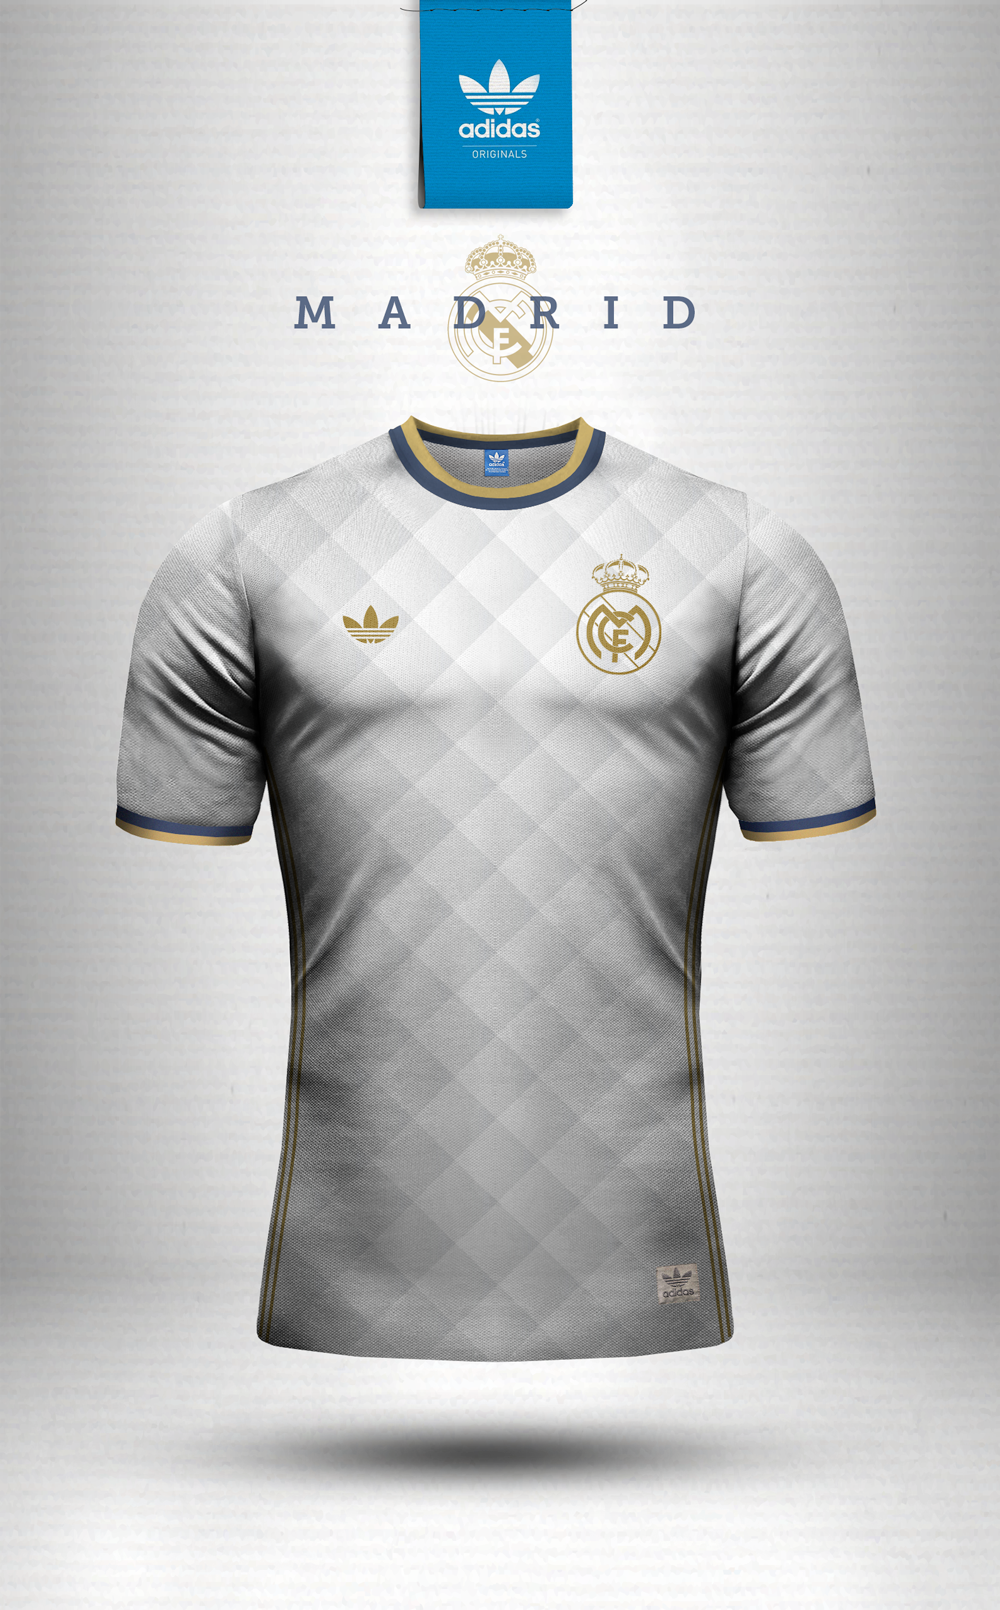 Pin by Joel Marsh on Brand Identity | Soccer shirts, Real